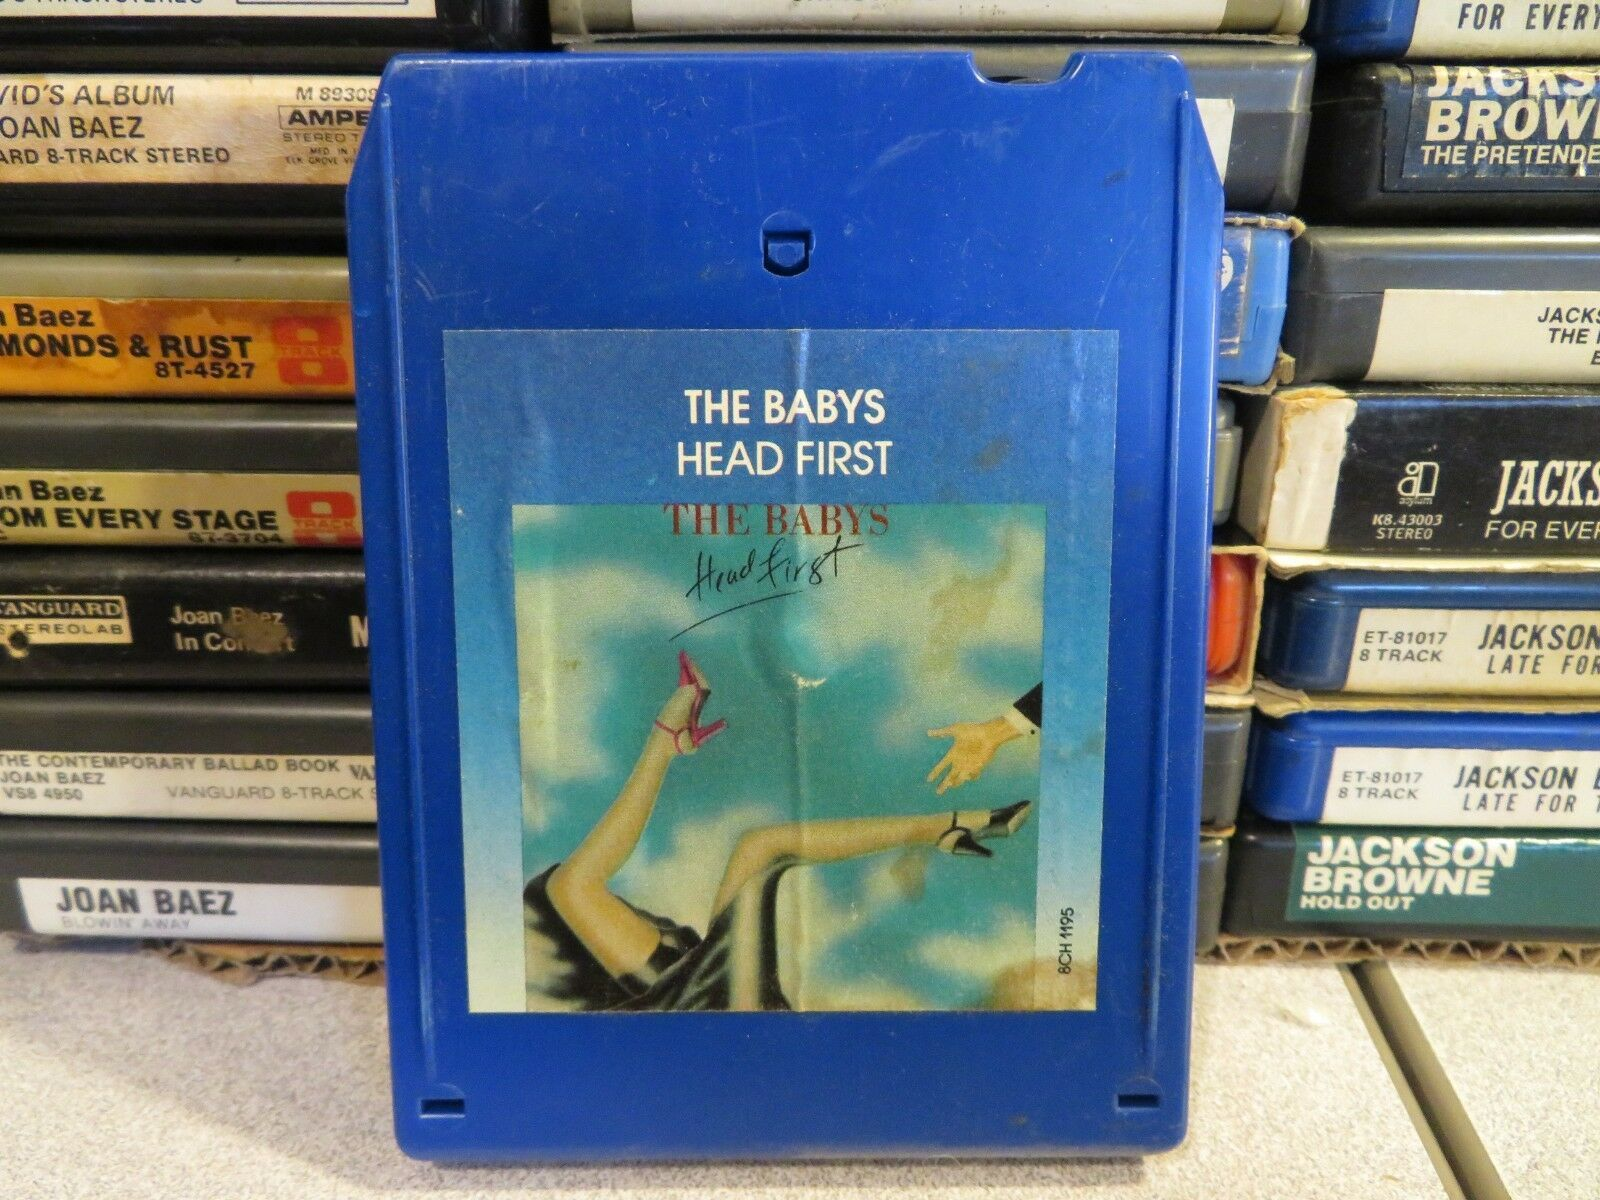 Primary image for THE BABYS Head First (8-Track Tape)